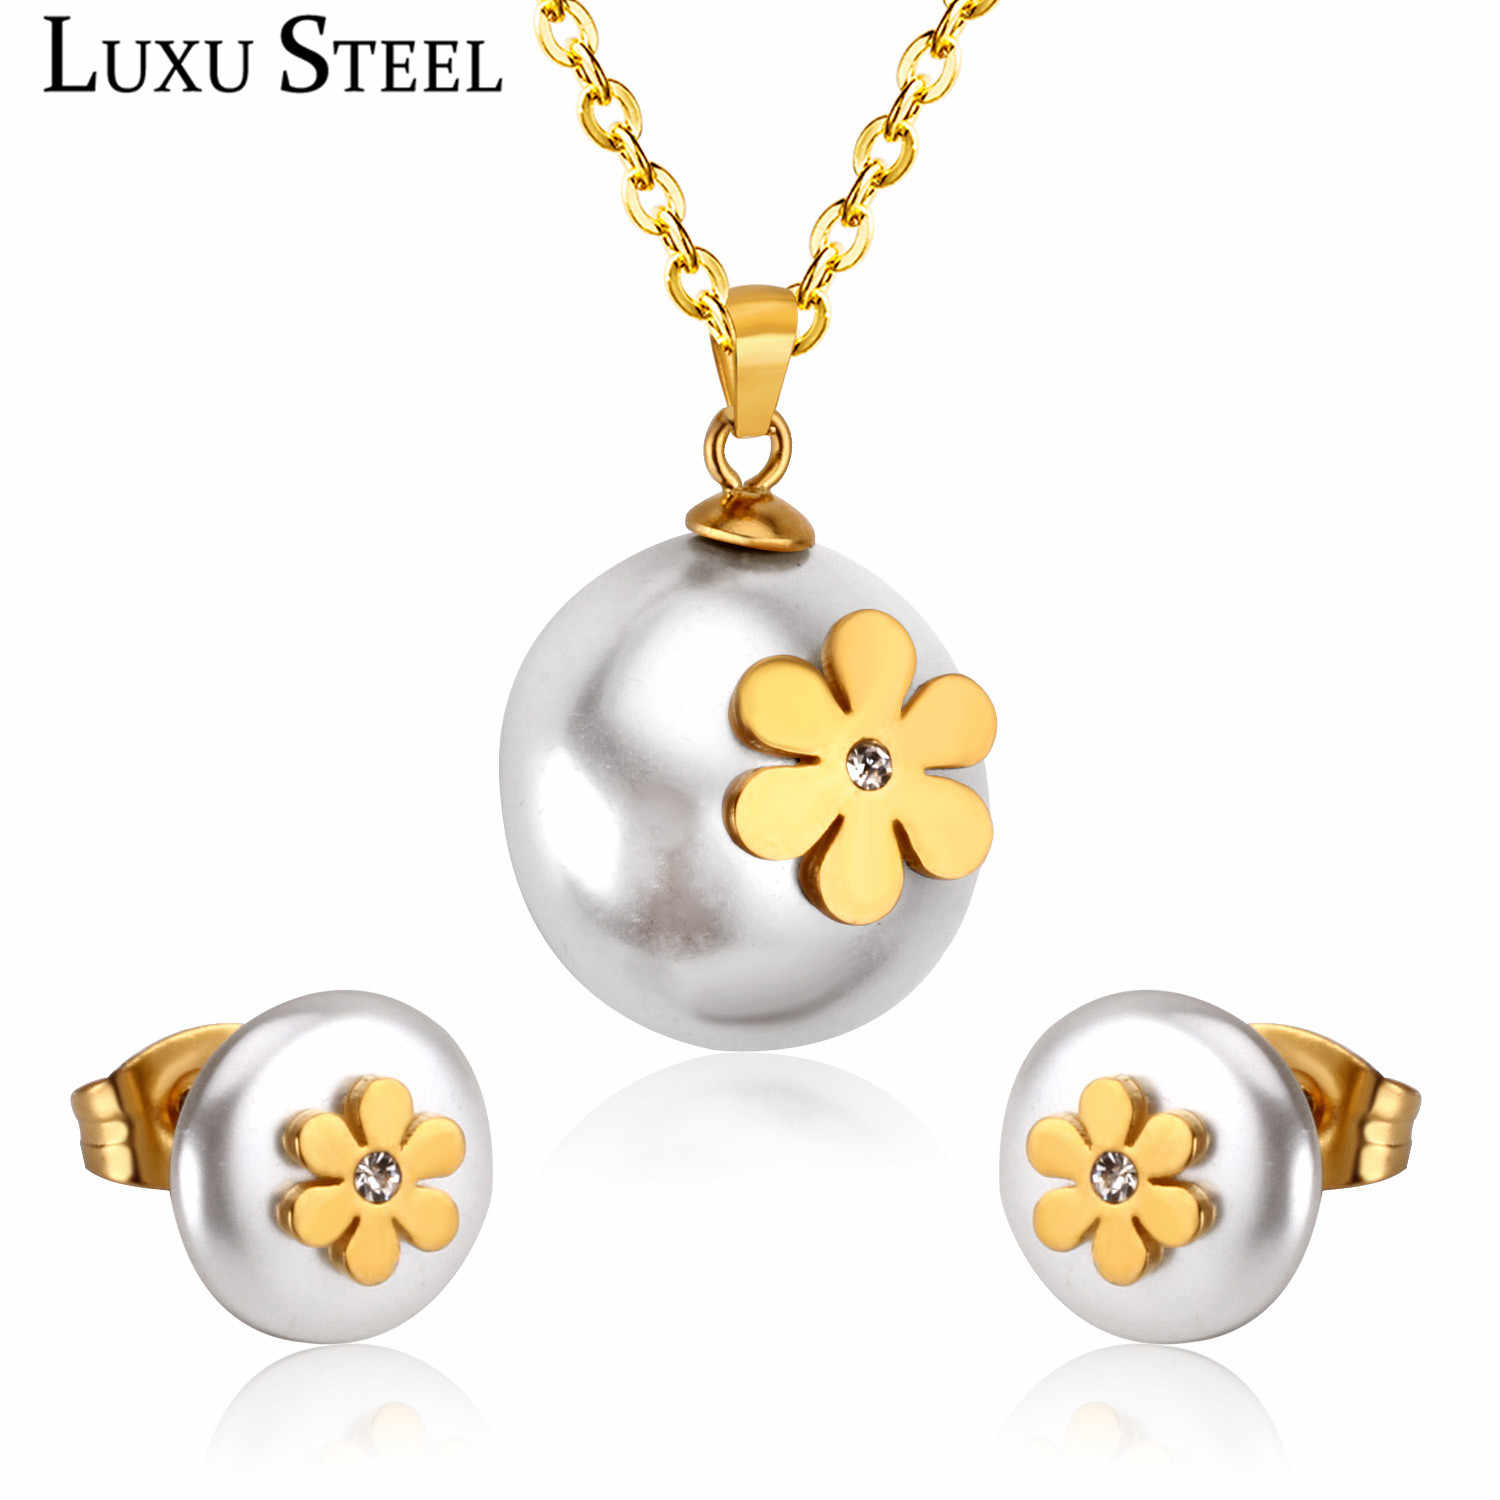 LUXUSTEEL Gold Flower Jewelry Sets Stainless Steel Gold/Silver White Imitation Pearl Pendant Necklace Daily Wear Party Gift